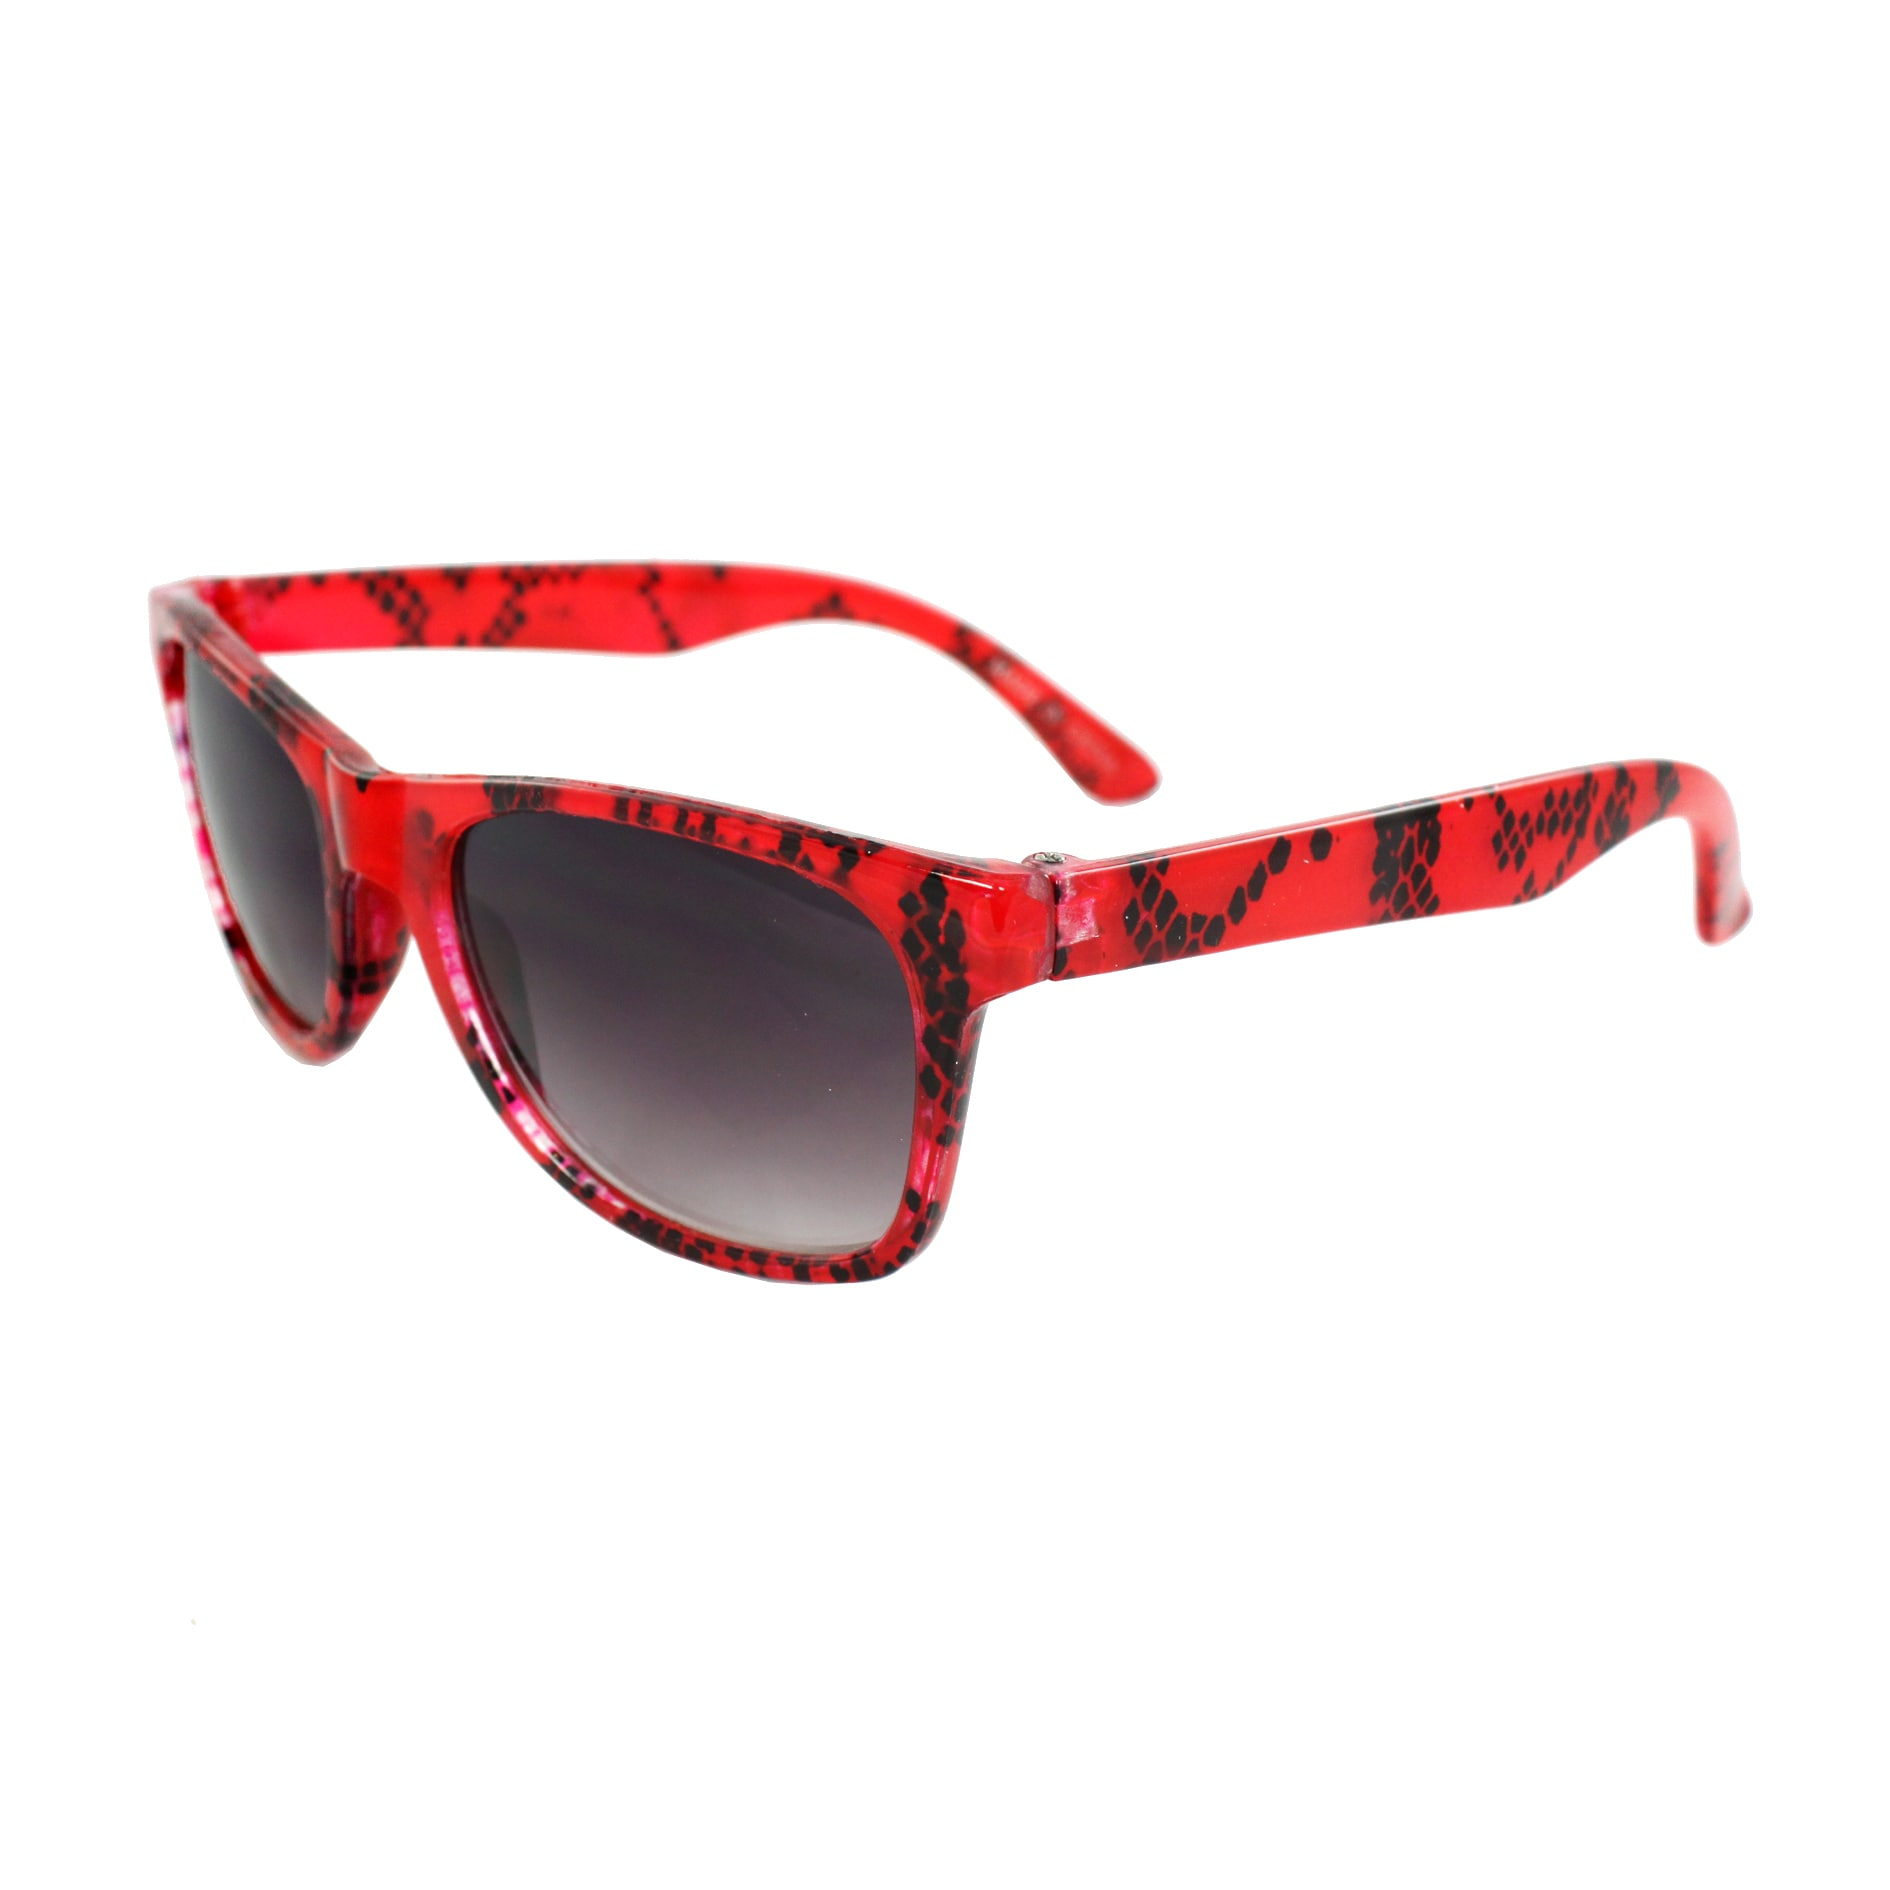 Children's K3115-RDPB Red Plastic Fashion Sunglasses